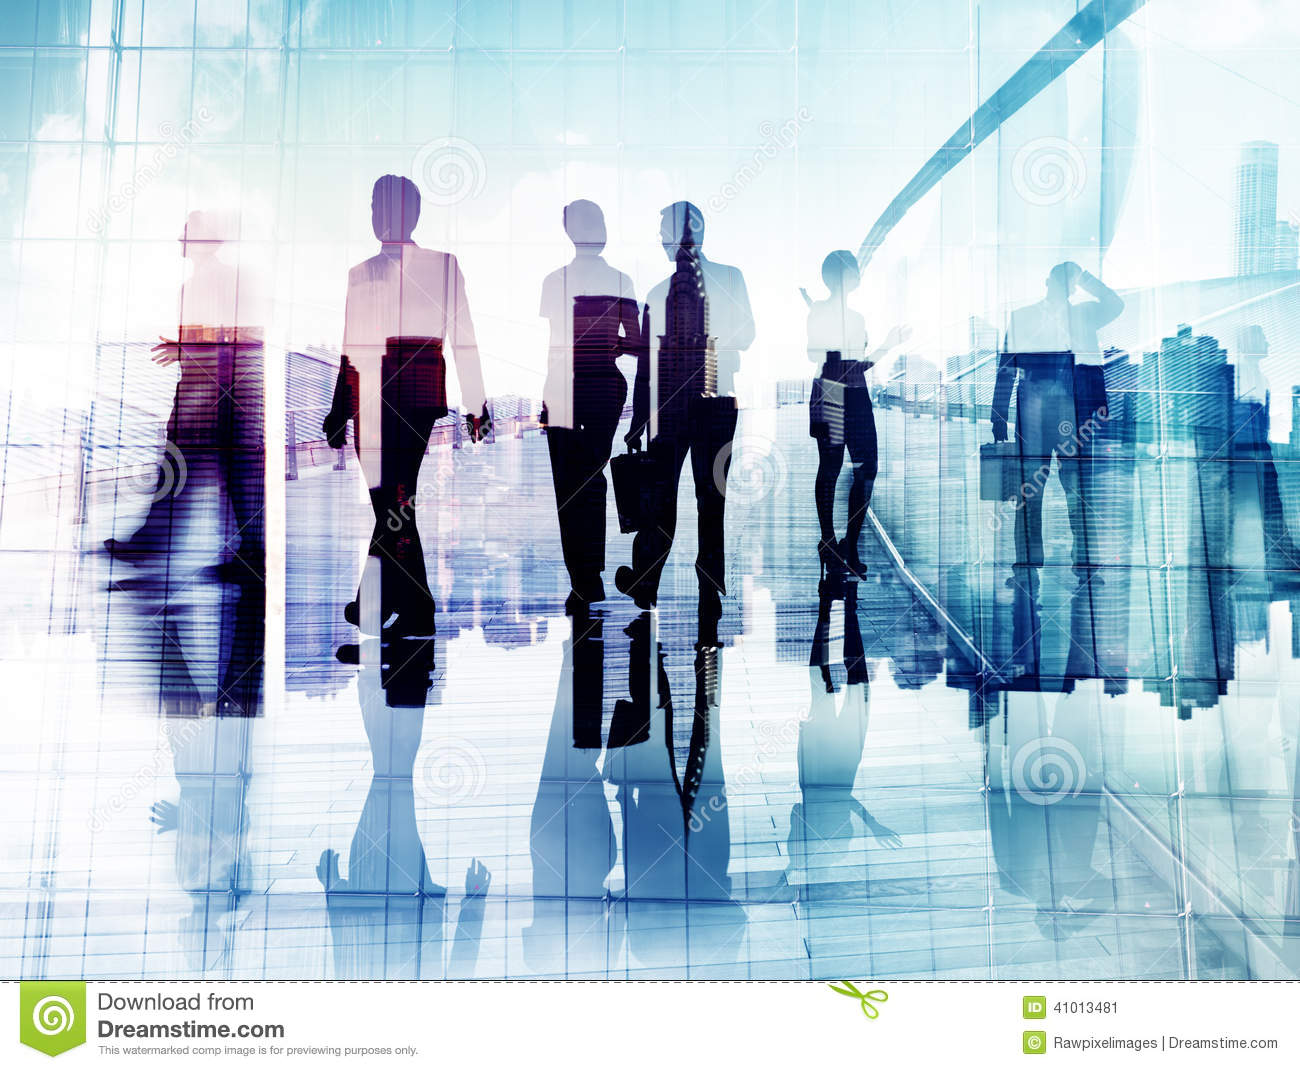 Free Images Traveling People Airport Bridge Business: Silhouettes Of Business People In Blurred Motion Walking